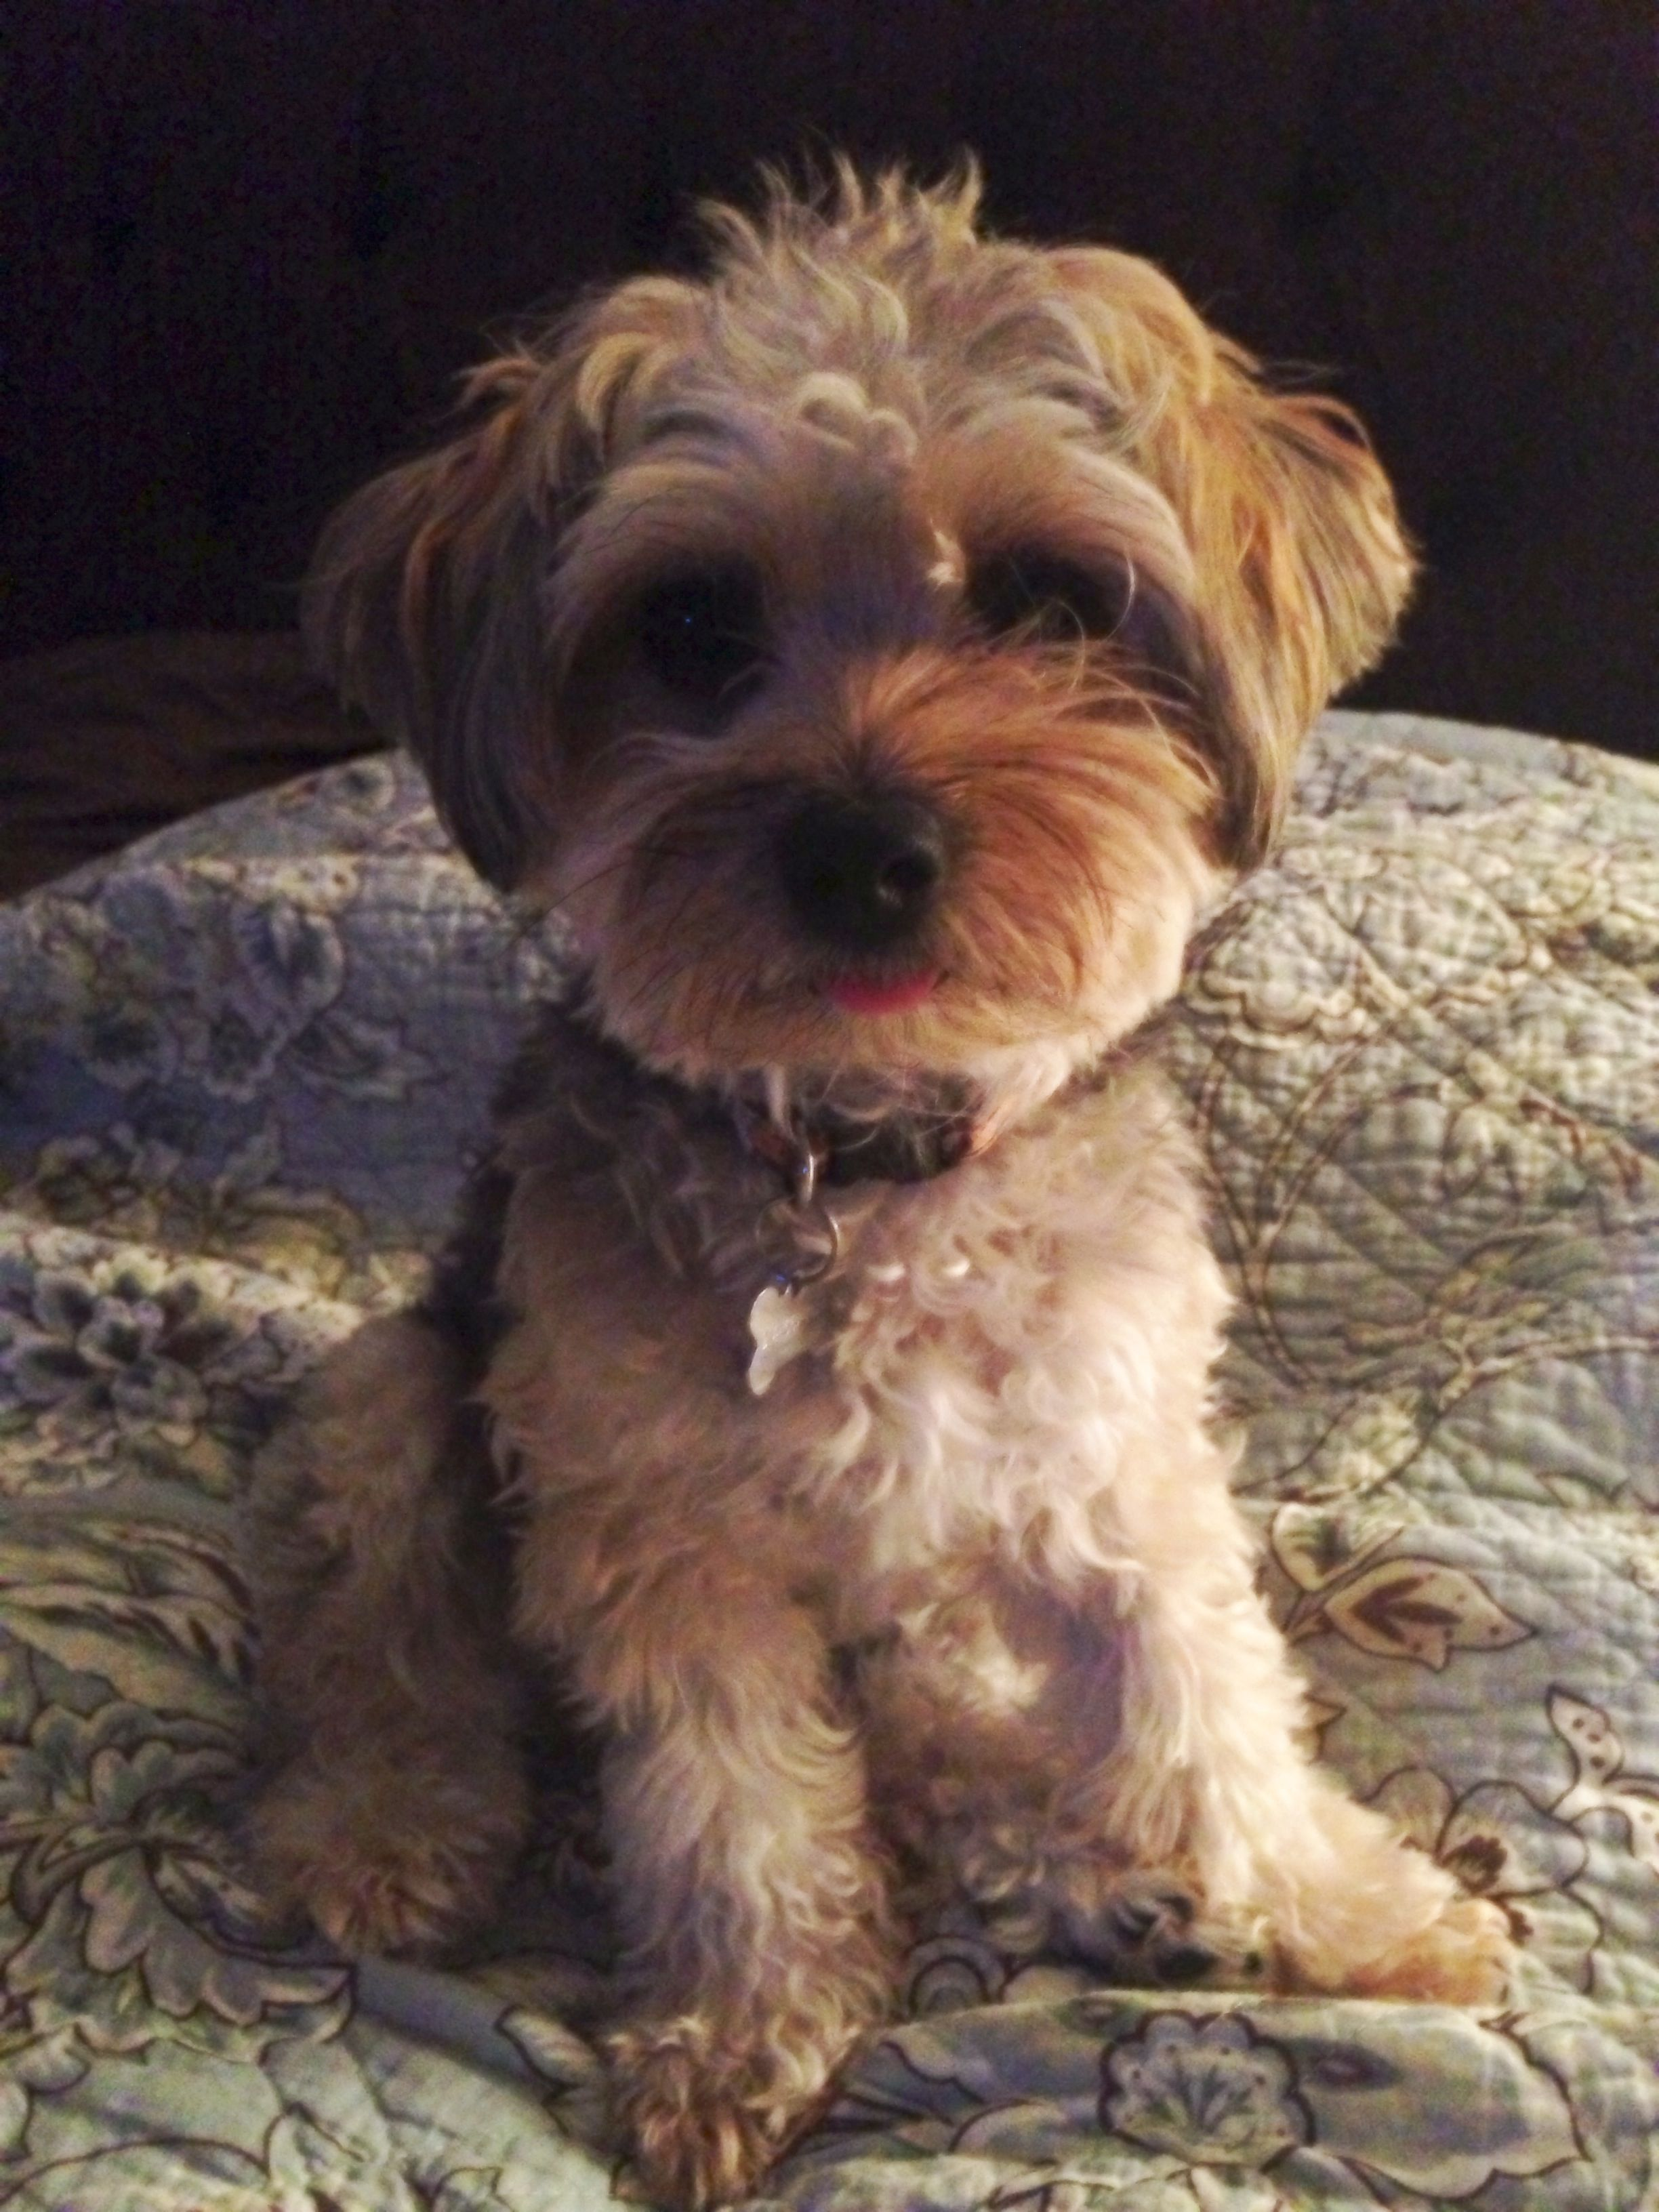 Apologise, Adult yorkie poo picture